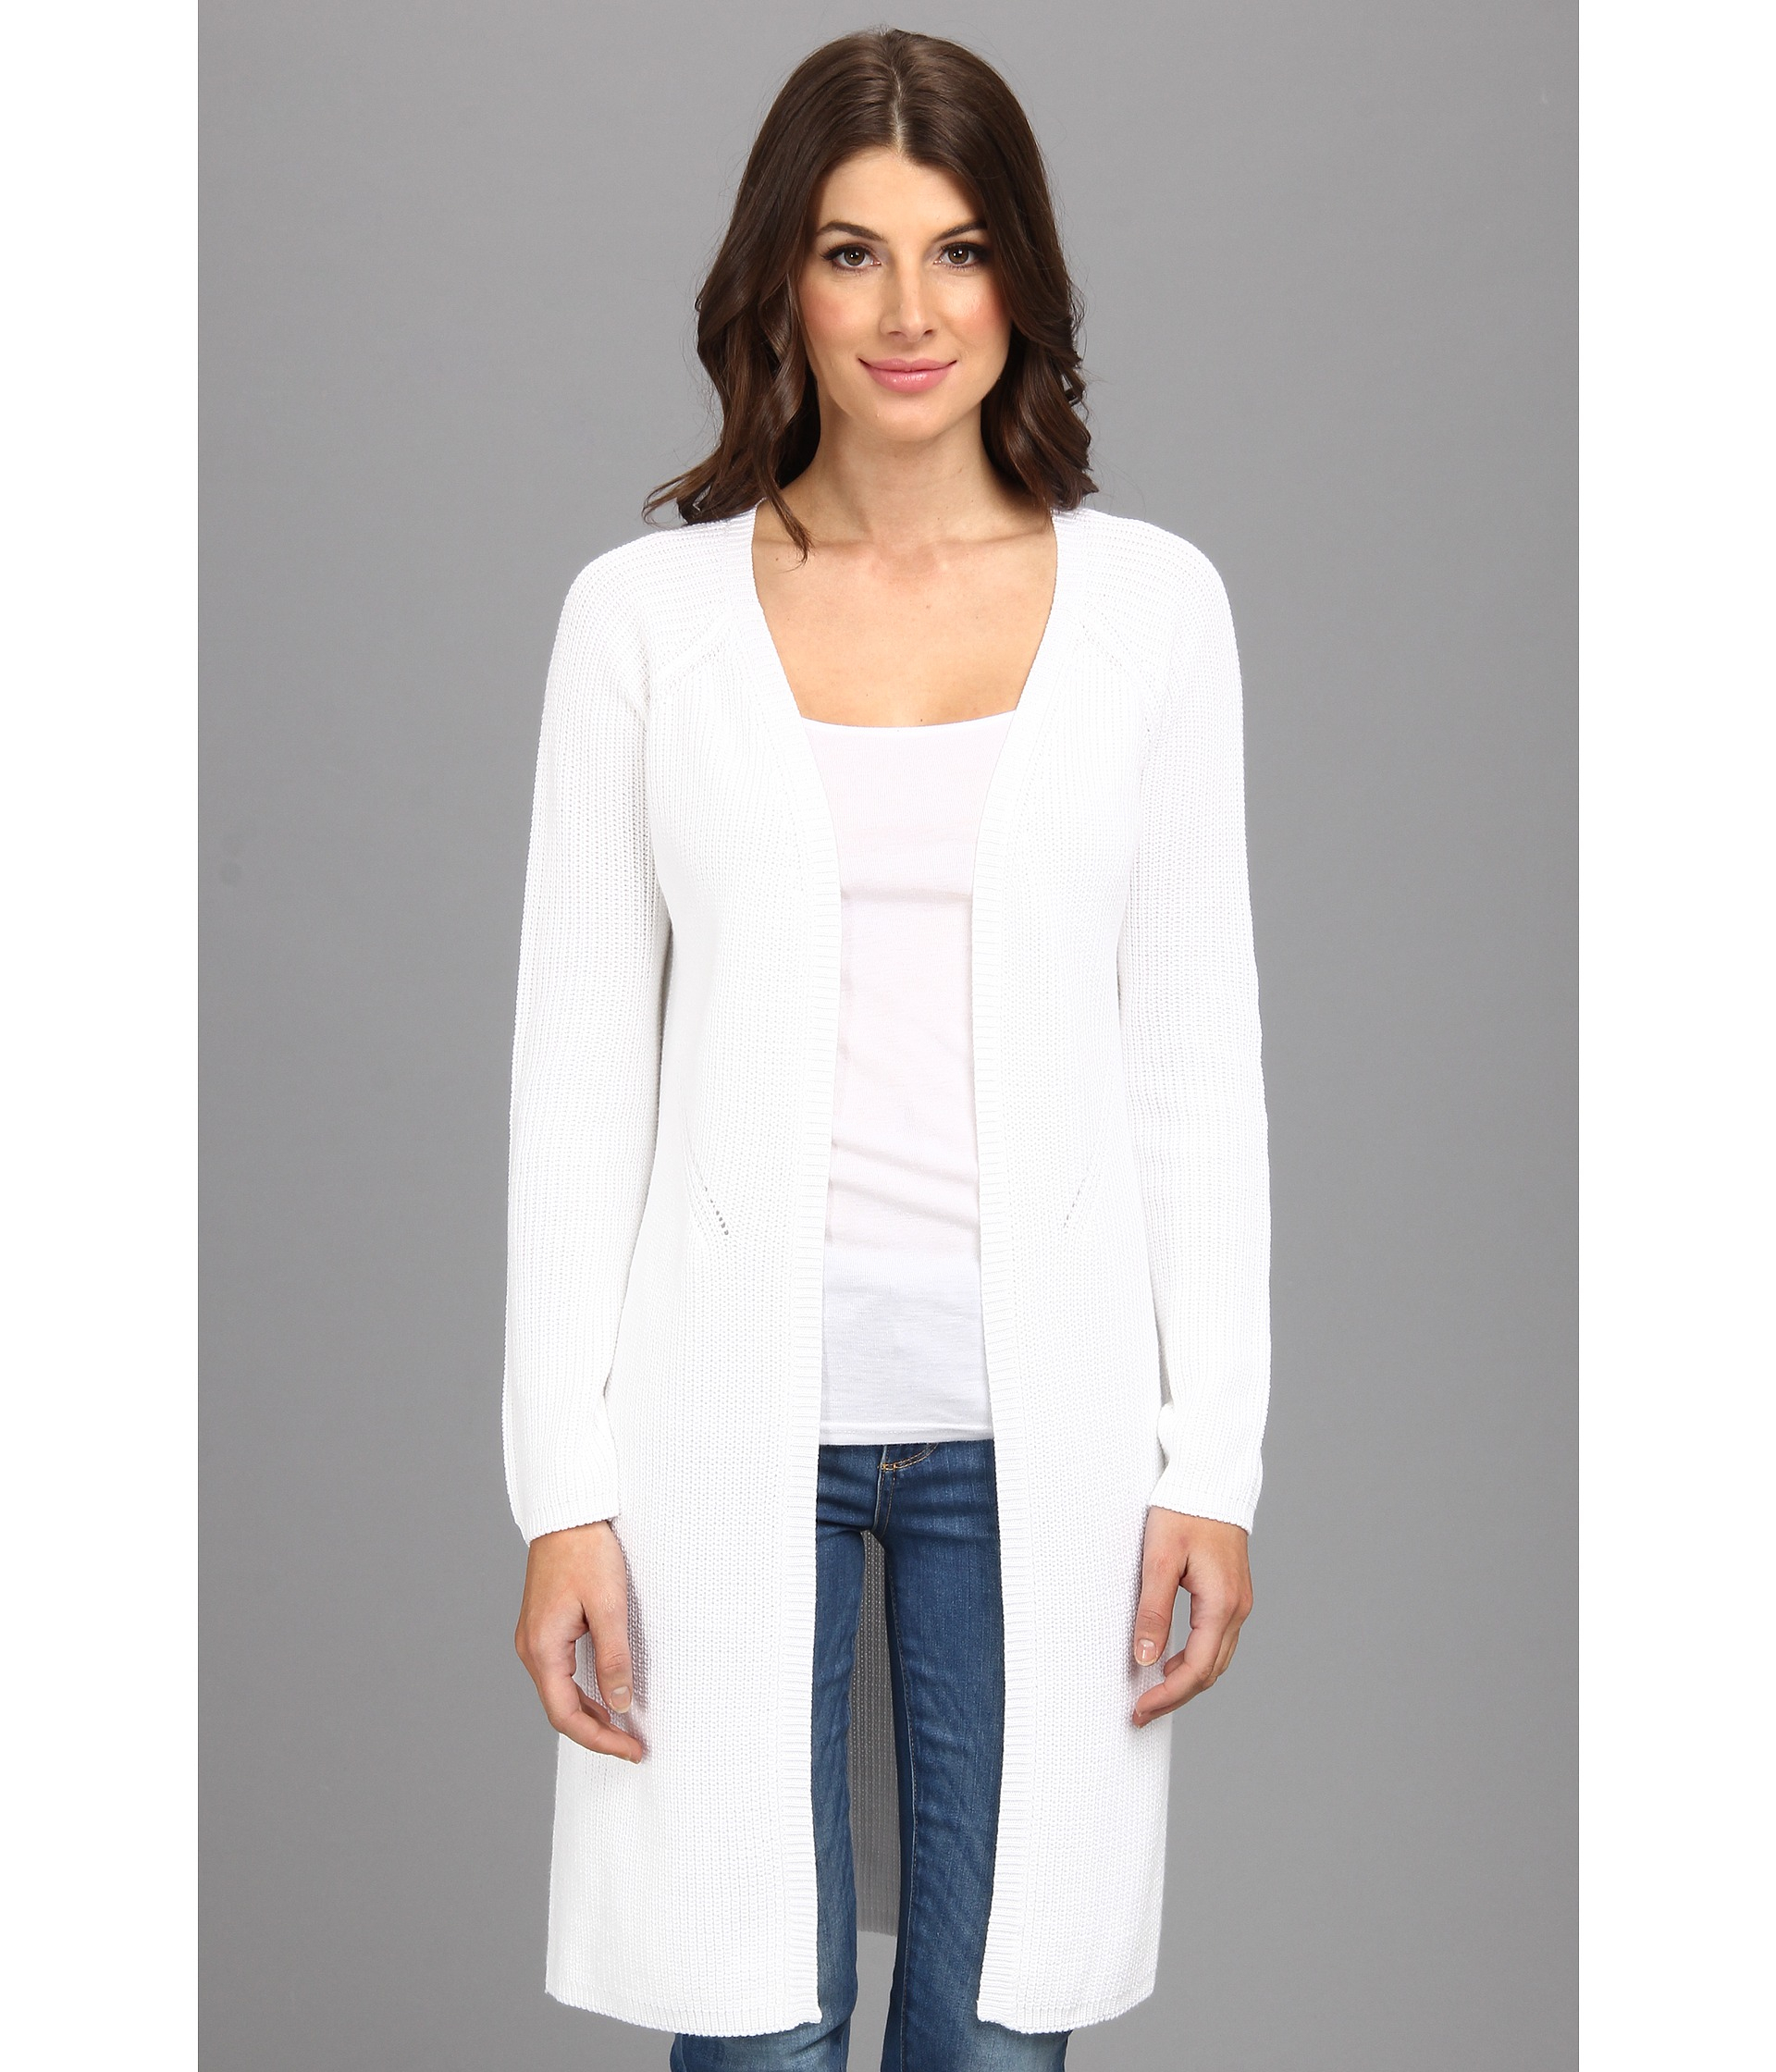 525 america Shaker Maxi Cardigan in White | Lyst